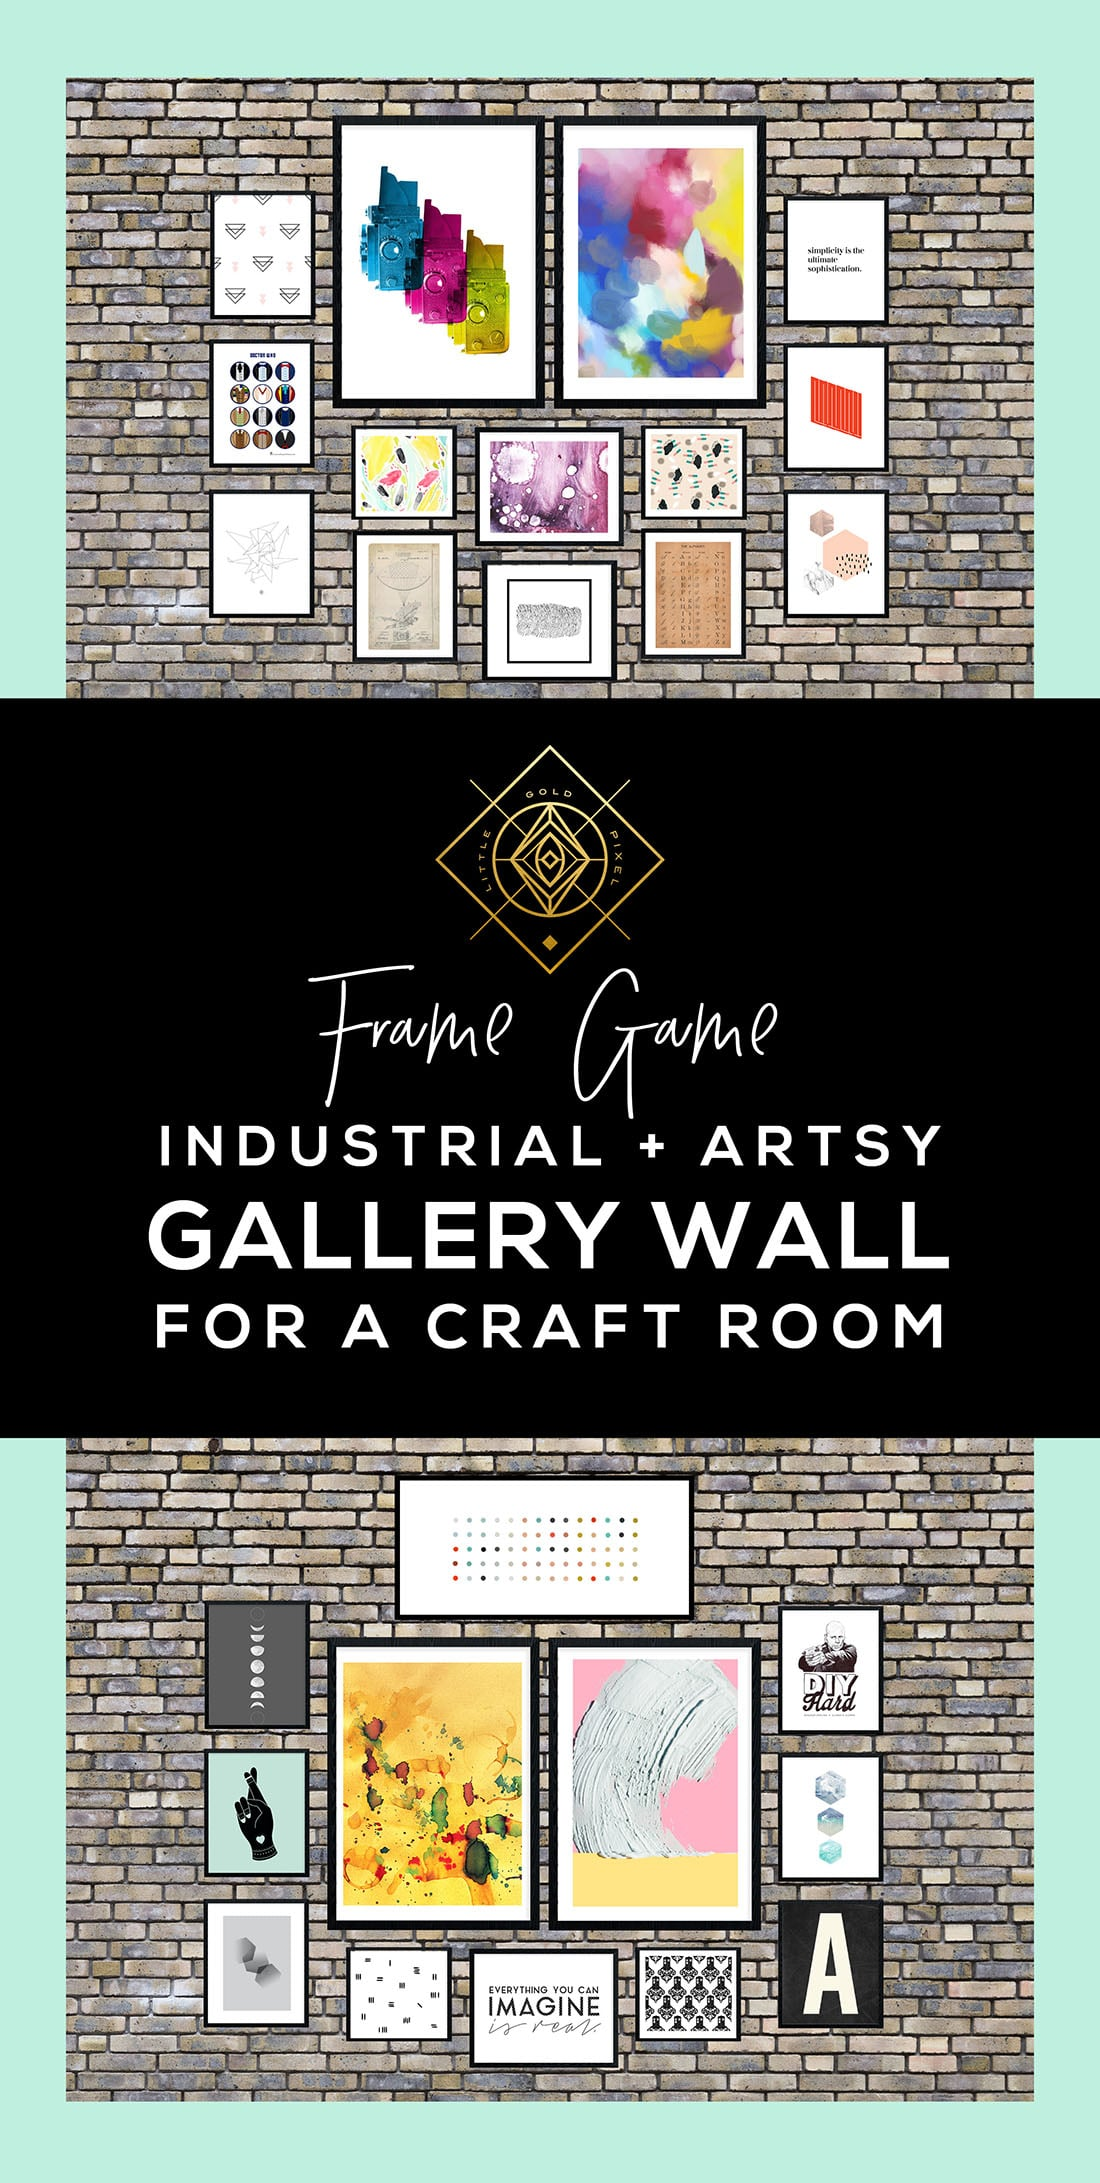 Artsy Industrial Chic Gallery Wall • Frame Game • Little Gold Pixel